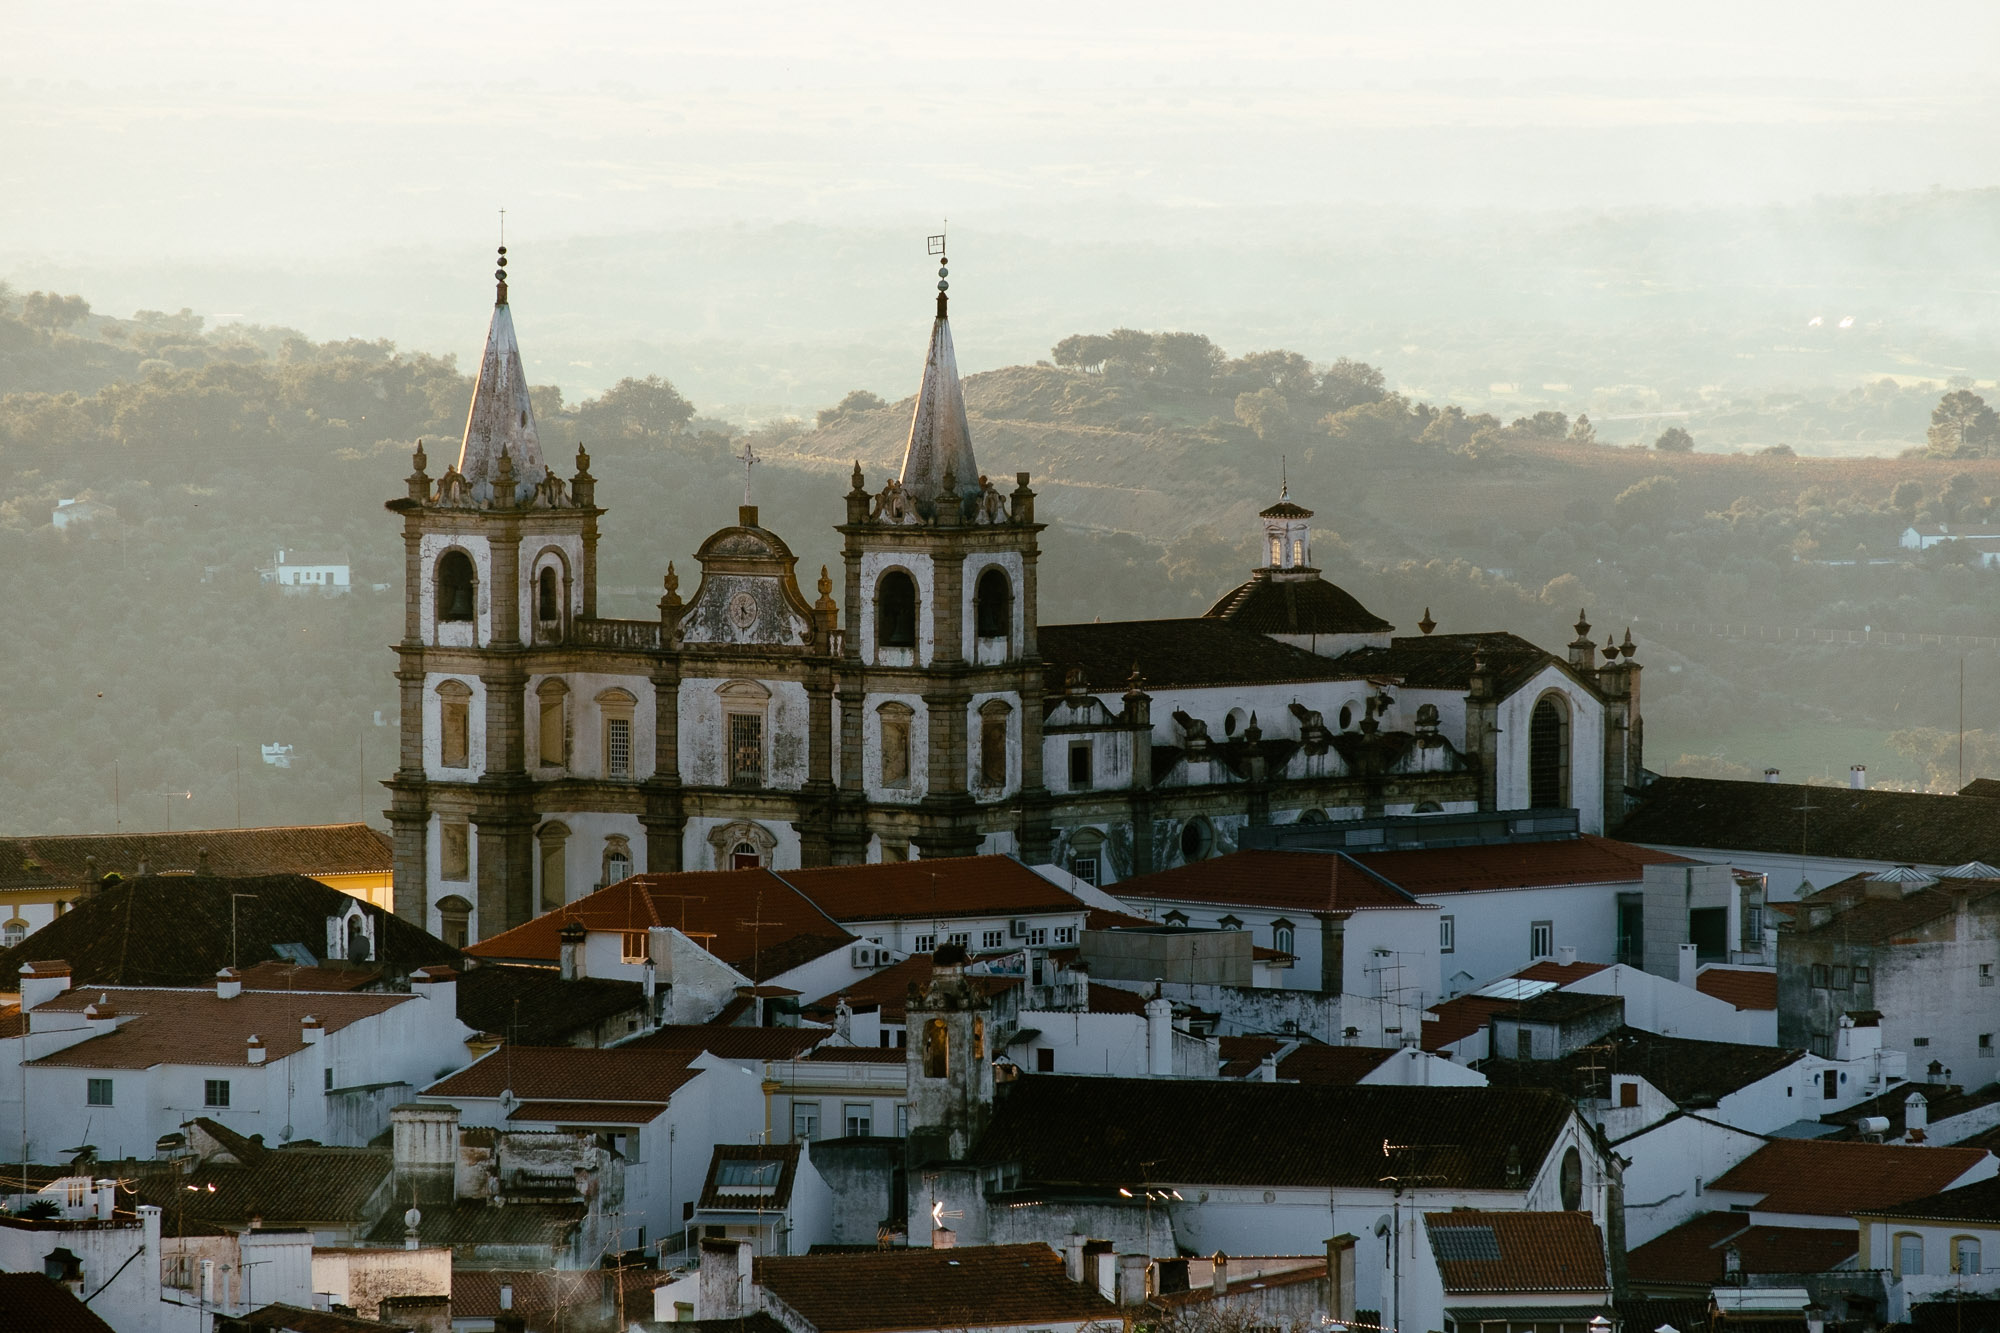 Portalegre, Alentejo - Emanuele Siracusa Portugal Travel Photographer